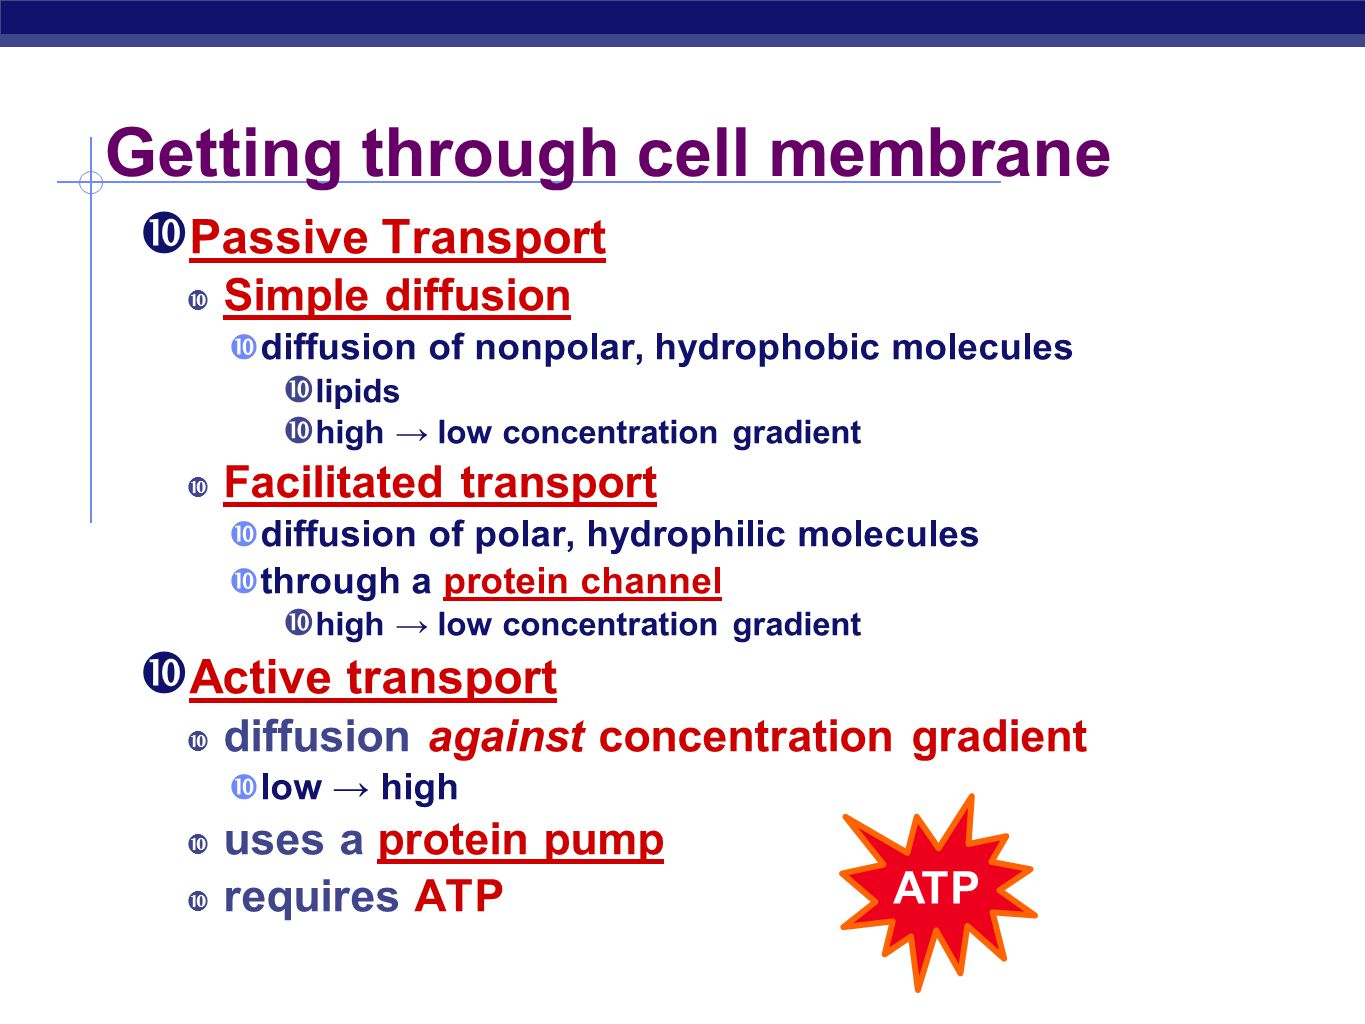 cell membrane essay Cell structure essay examples 9 total results an overview of the cellular structure and function 566 words 1 page a brief introduction to the cell structure and function 564 words 1 page an analysis of the cell membrane in structures of the cell 229 words 1 page an overview of the animal cells in biology 420 words 1 page exploring.